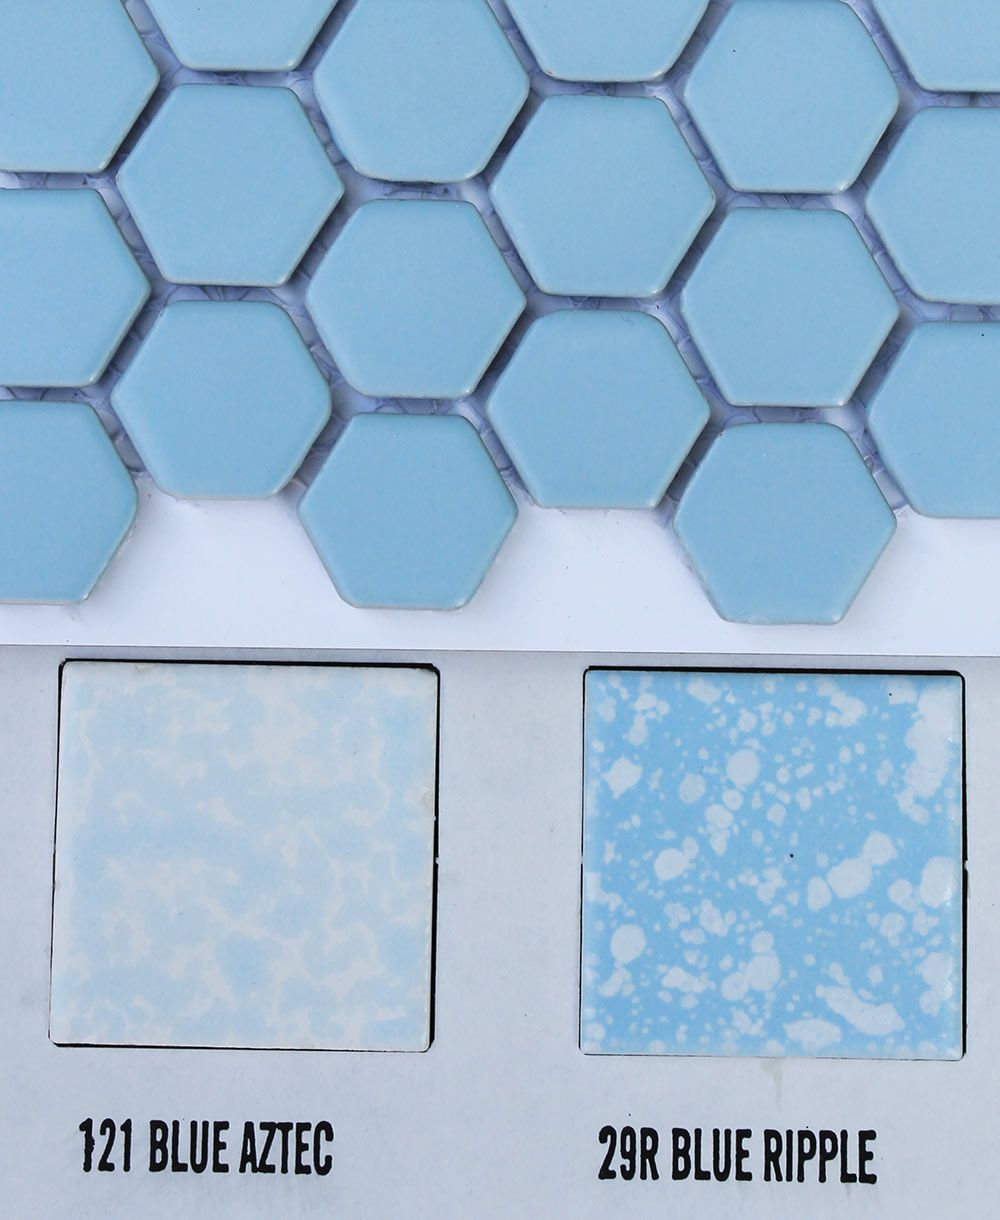 2 new porcelain hex tile floor options for your vintage pastel ...